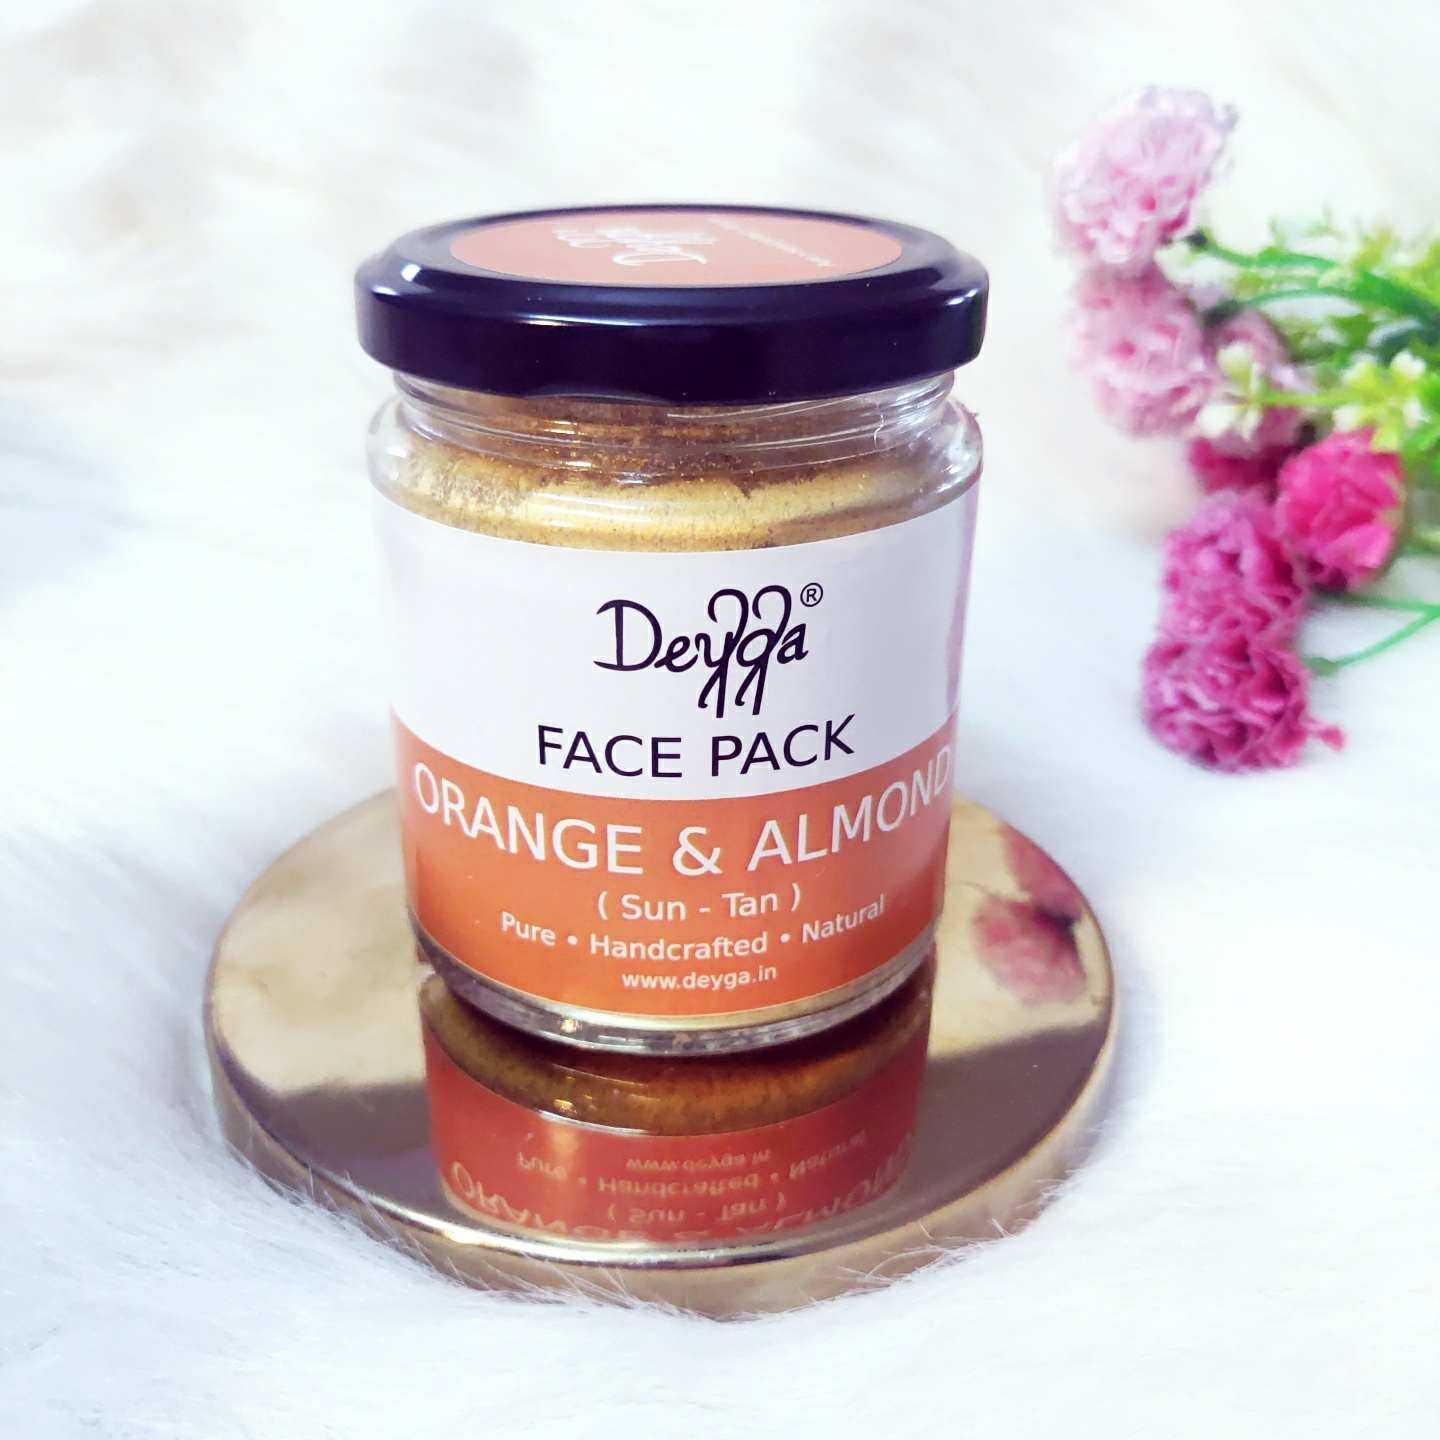 Deyga orange and almond face pack review